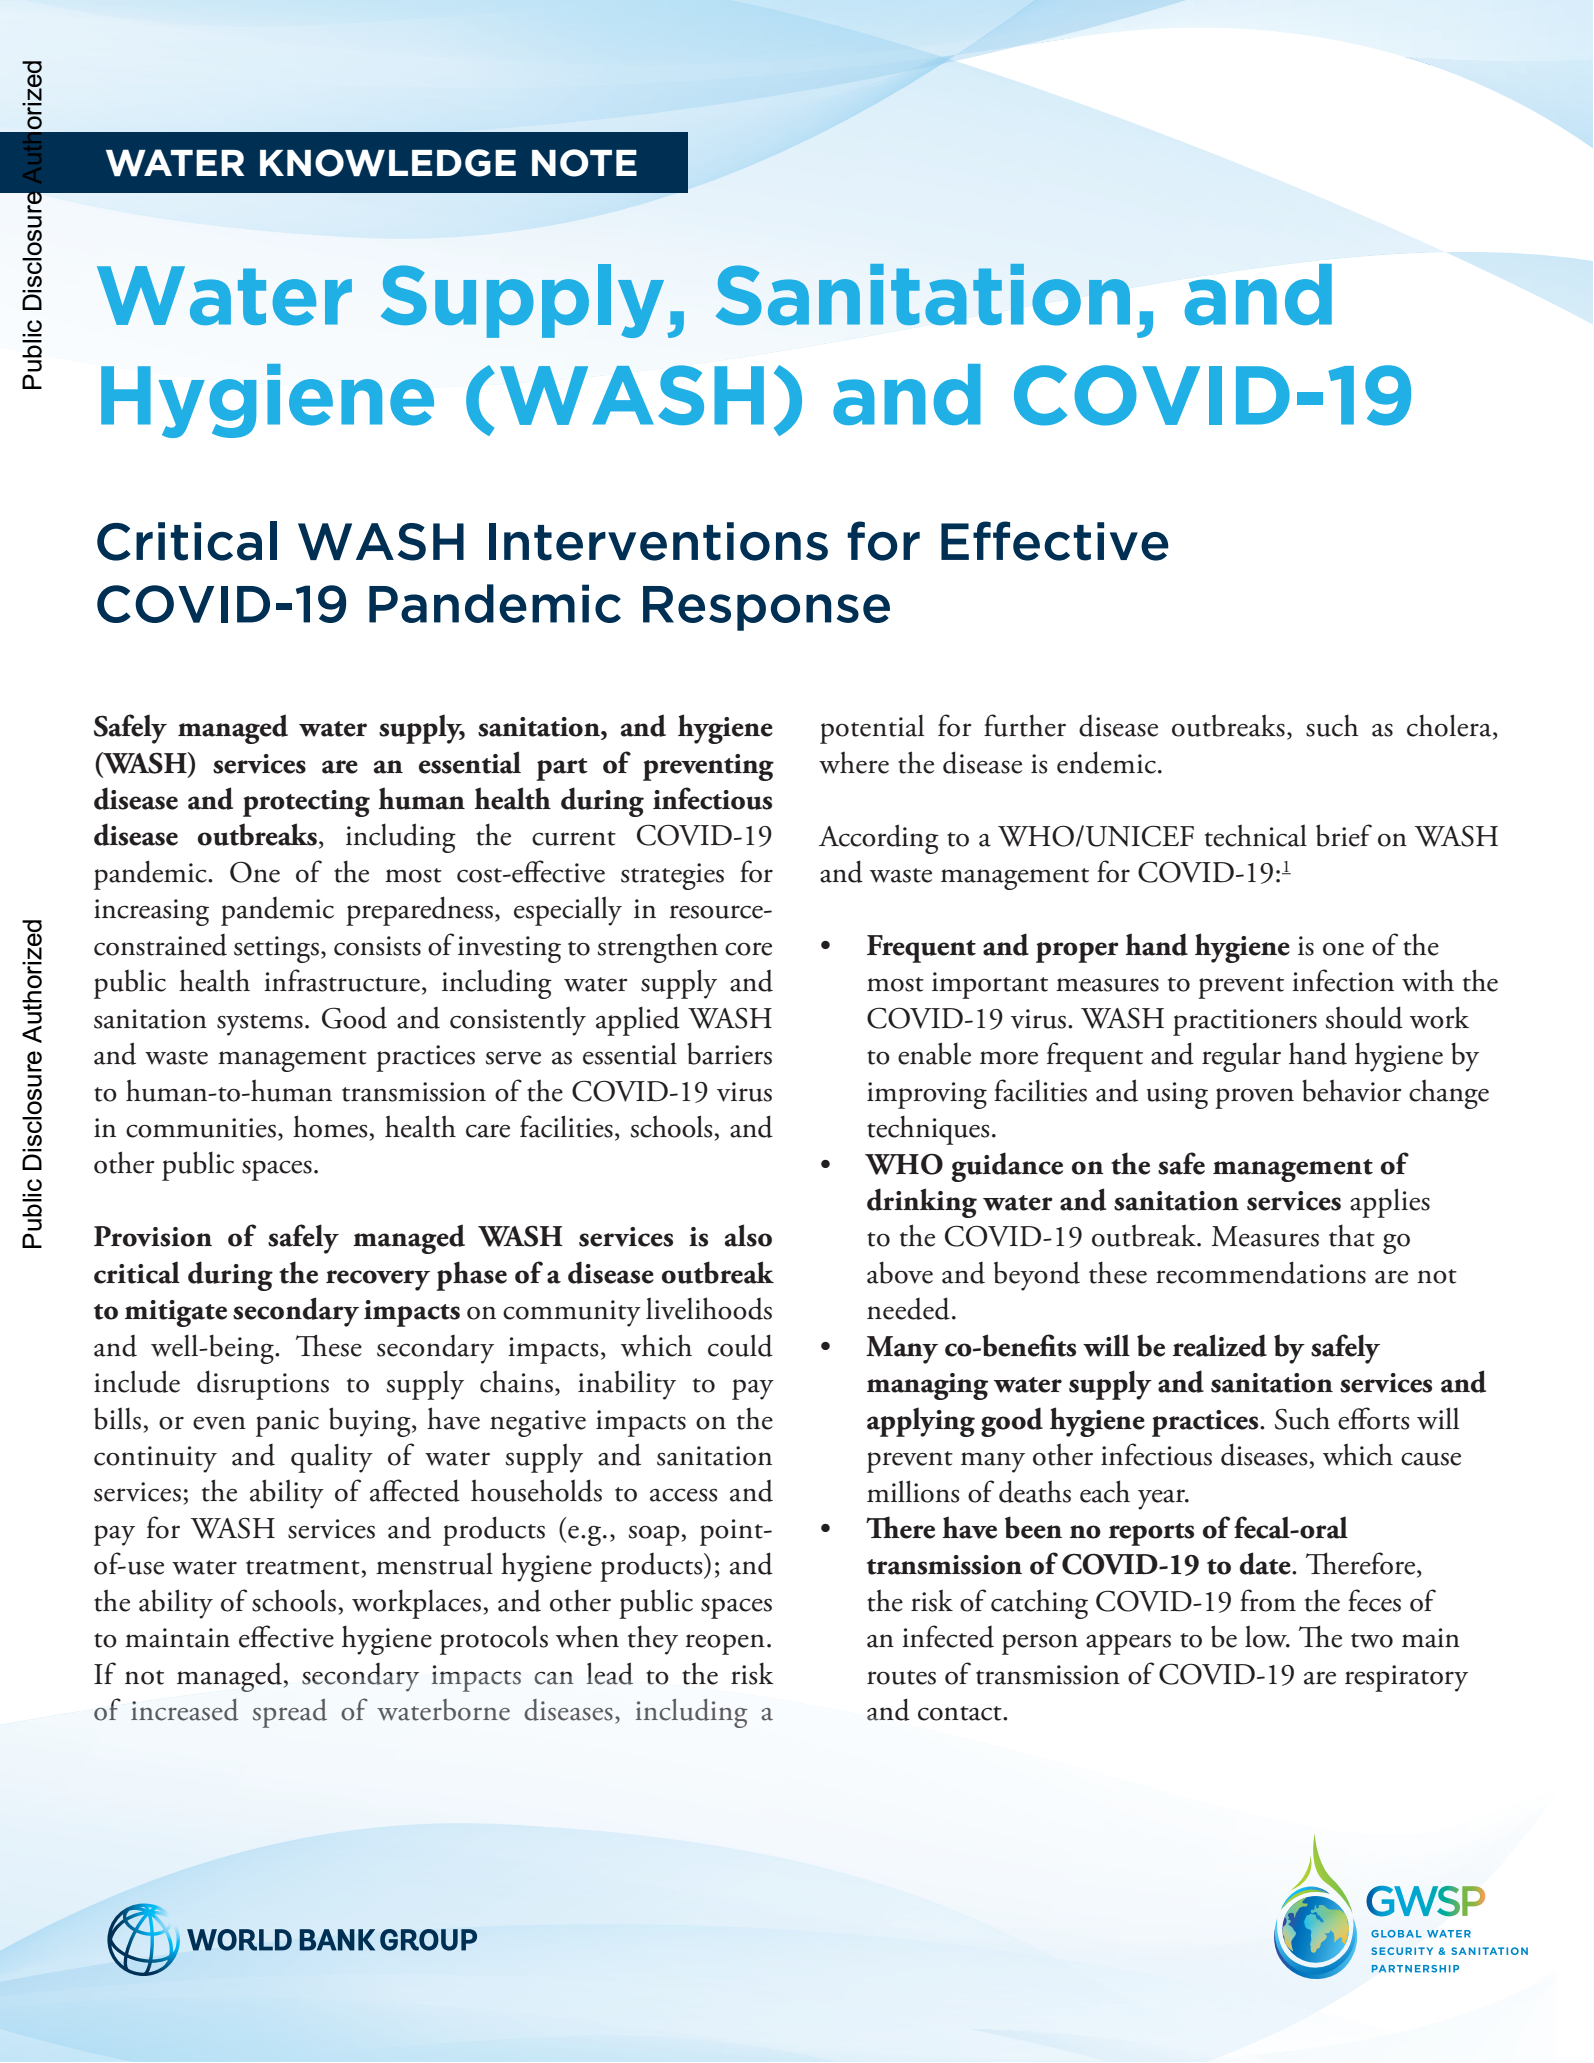 English_WASH-and-COVID-19-Critical-WASH-Interventions-for-Effective-COVID-19-Pandemic-Response